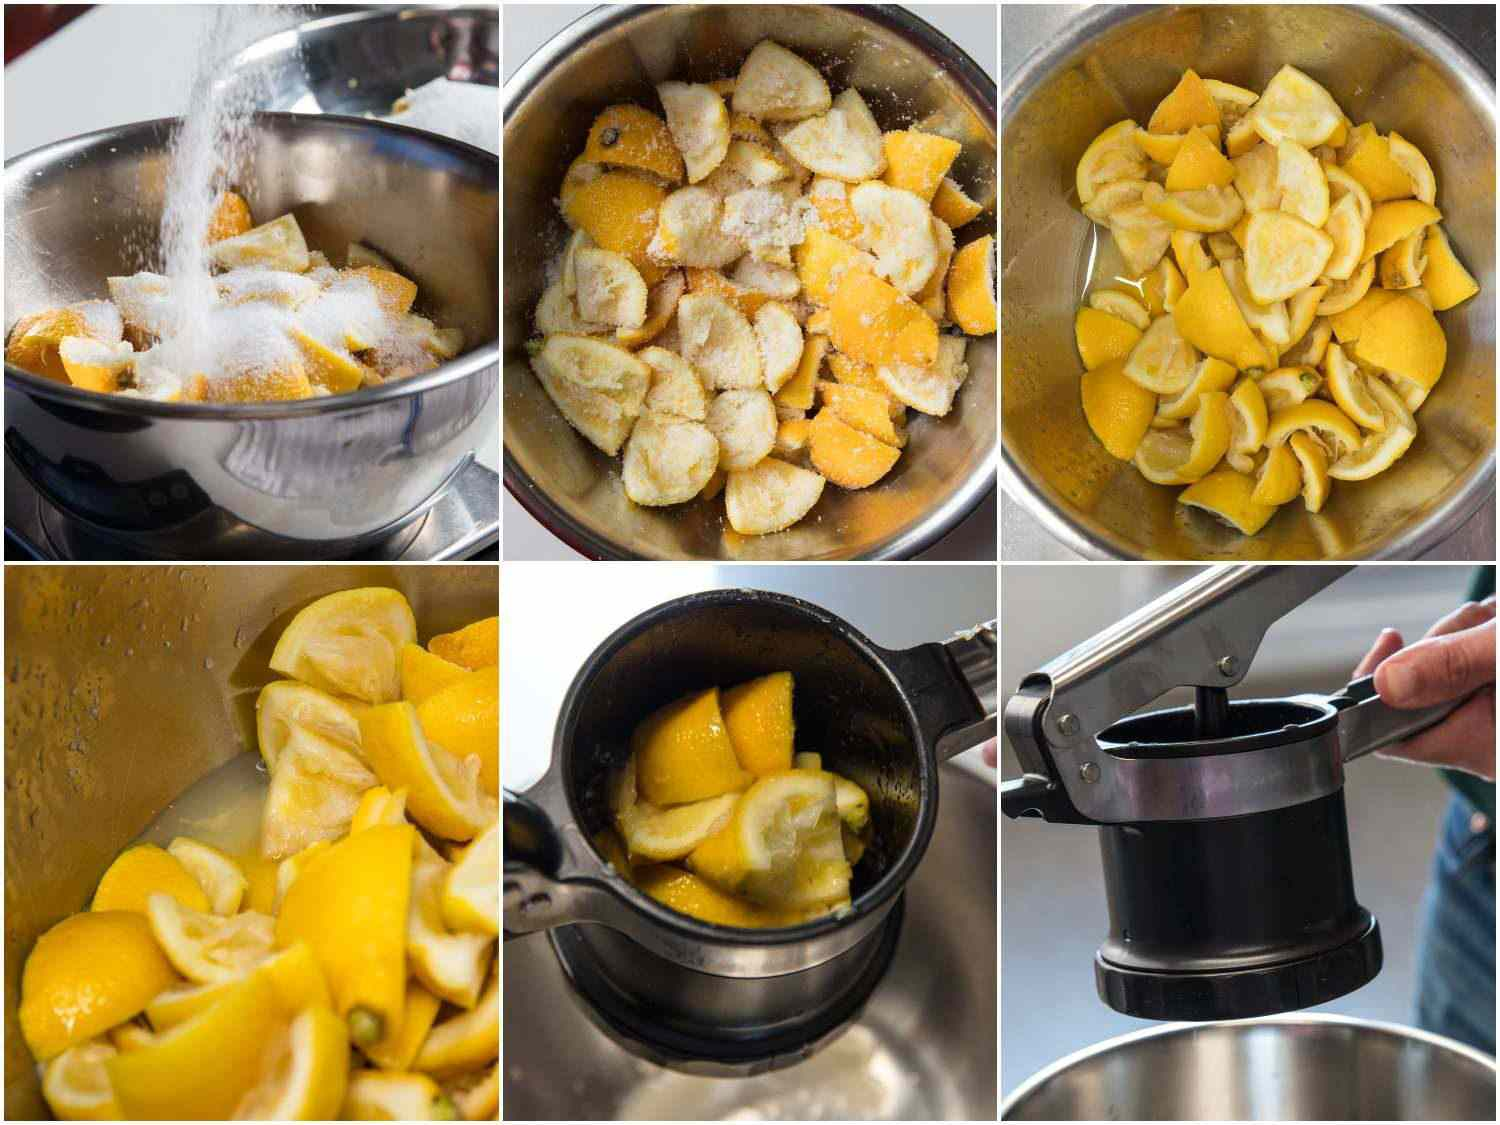 Collage of process of macerating lemon rinds with salt to extract liquid